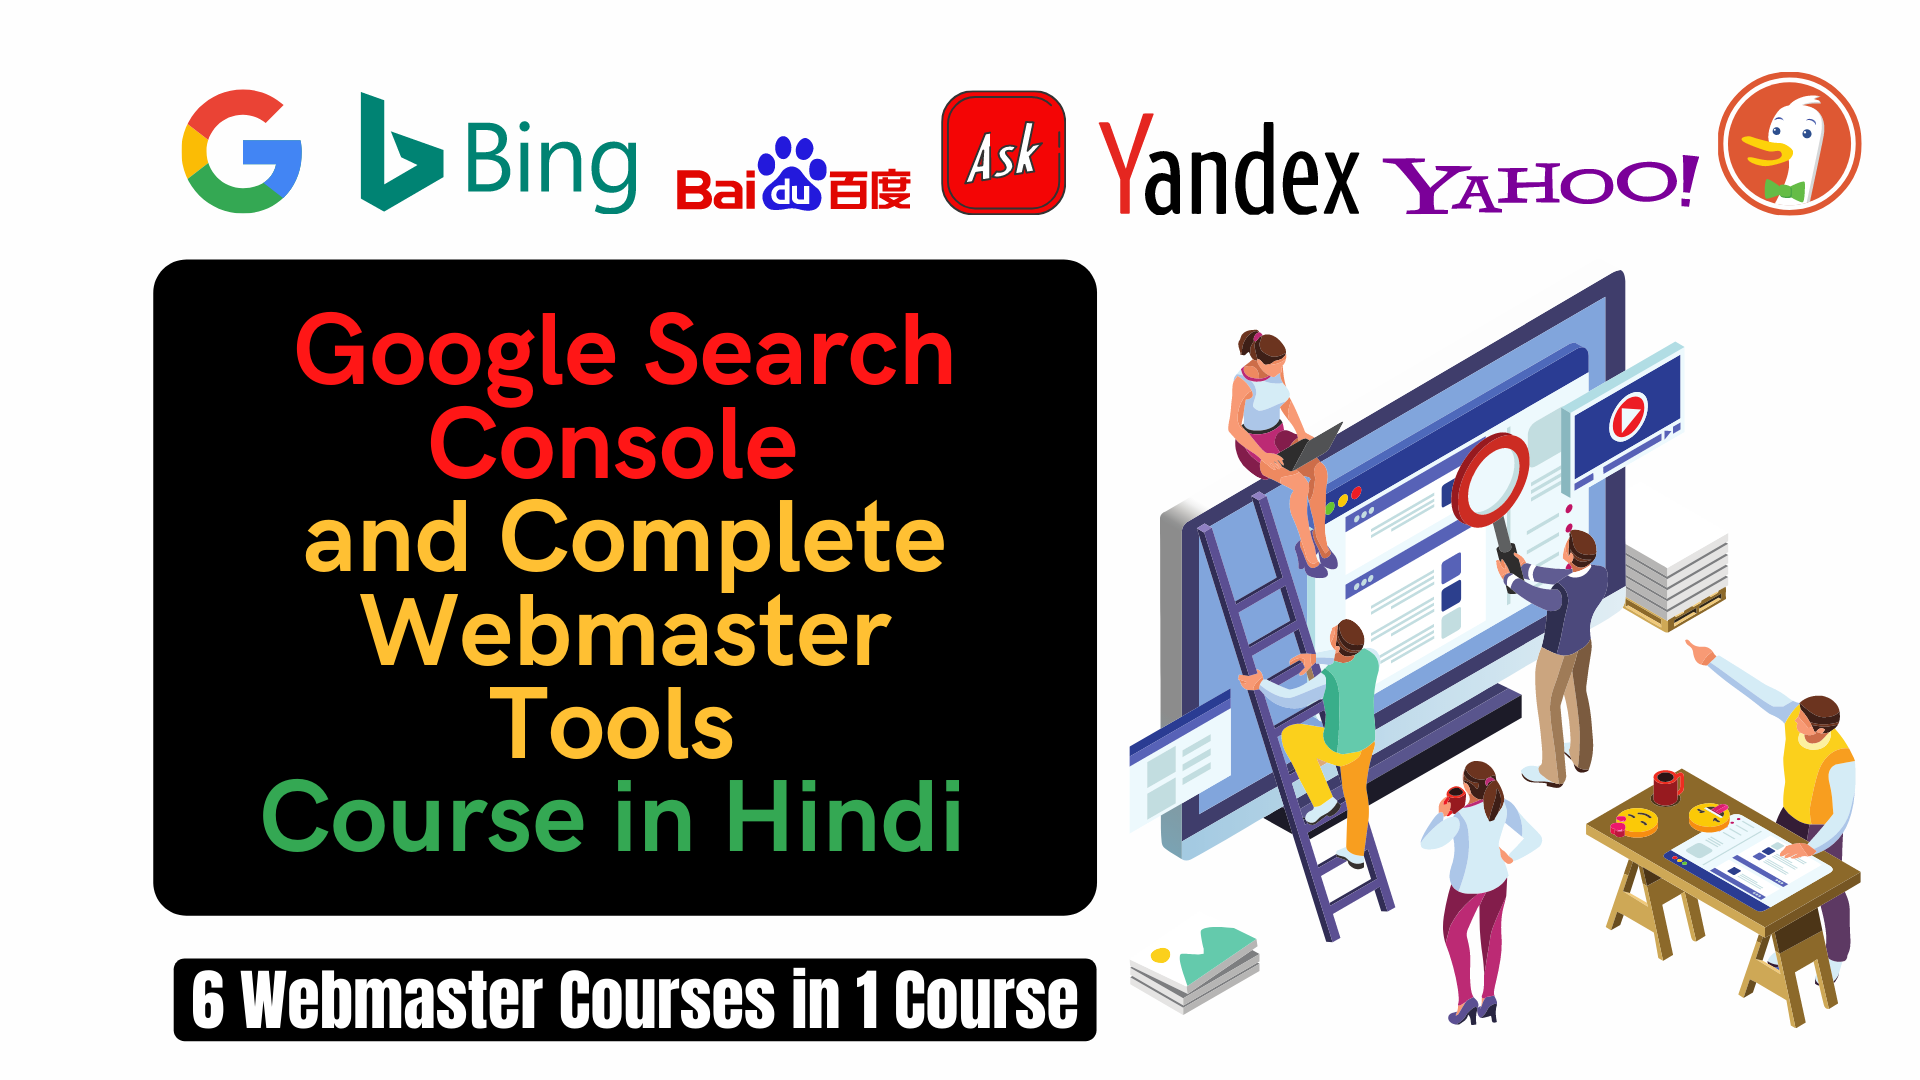 Google Search Console - Webmaster Tools Course in Hindi